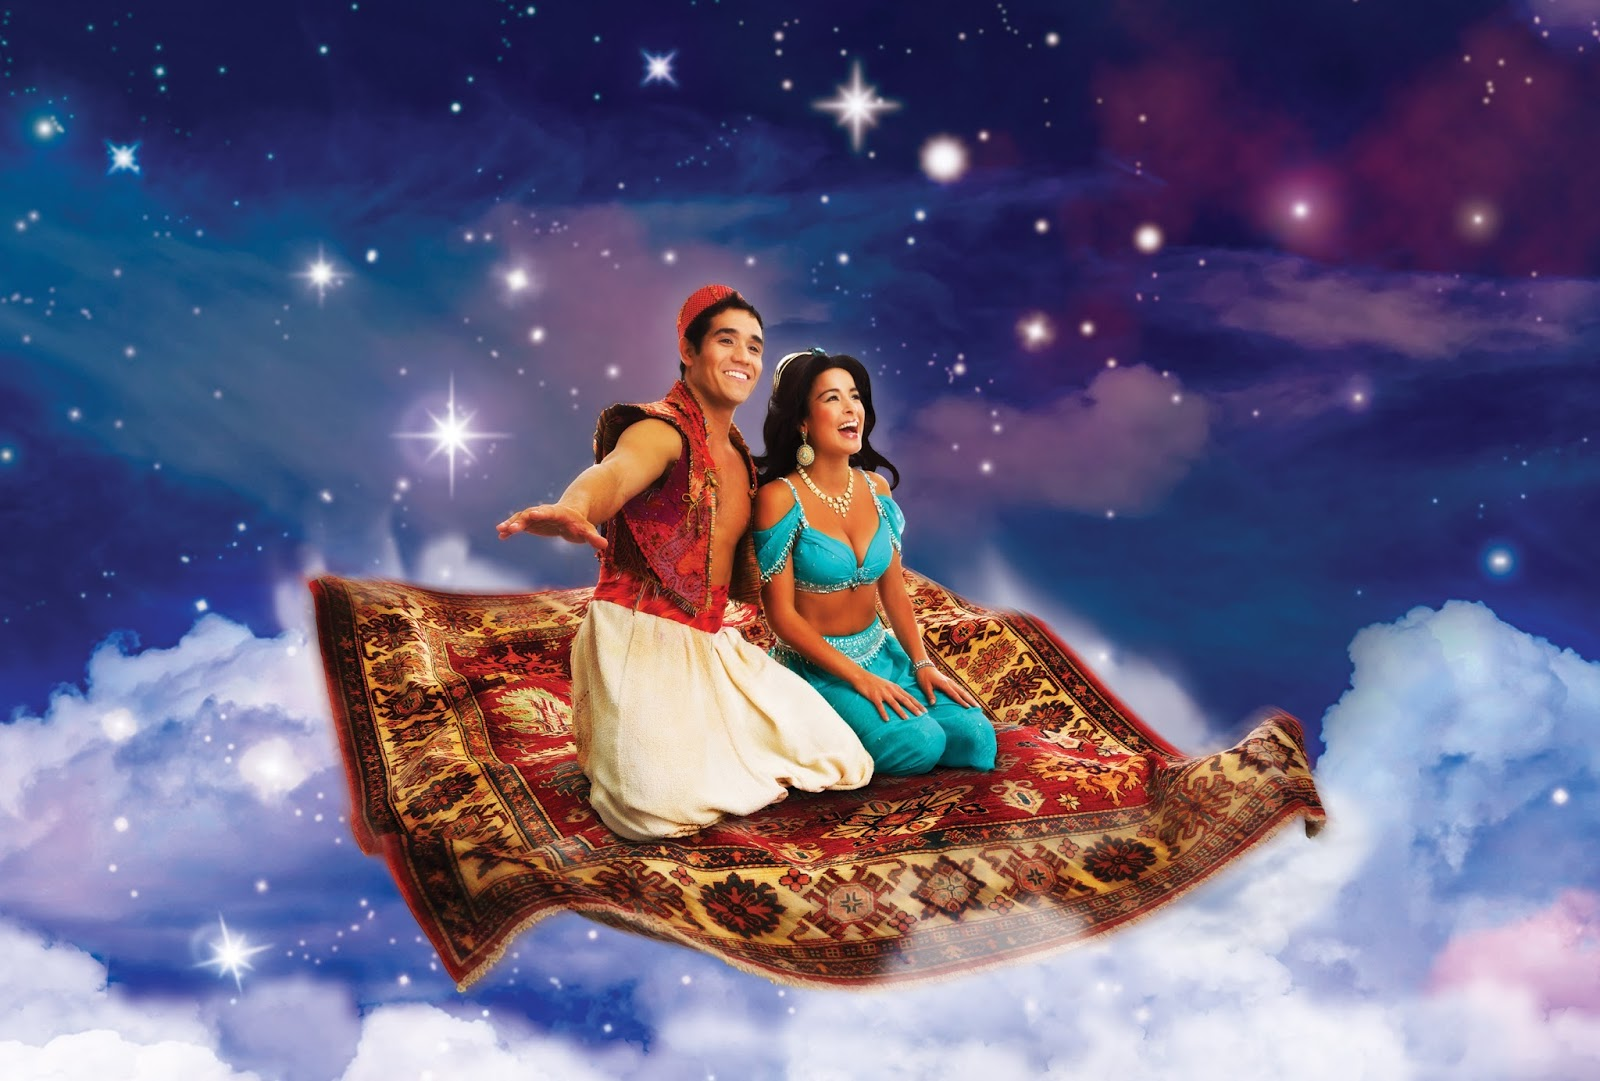 Gif Fliegender Teppich Aladdin Musical Full Cast Announced For Disney 39s Aladdin